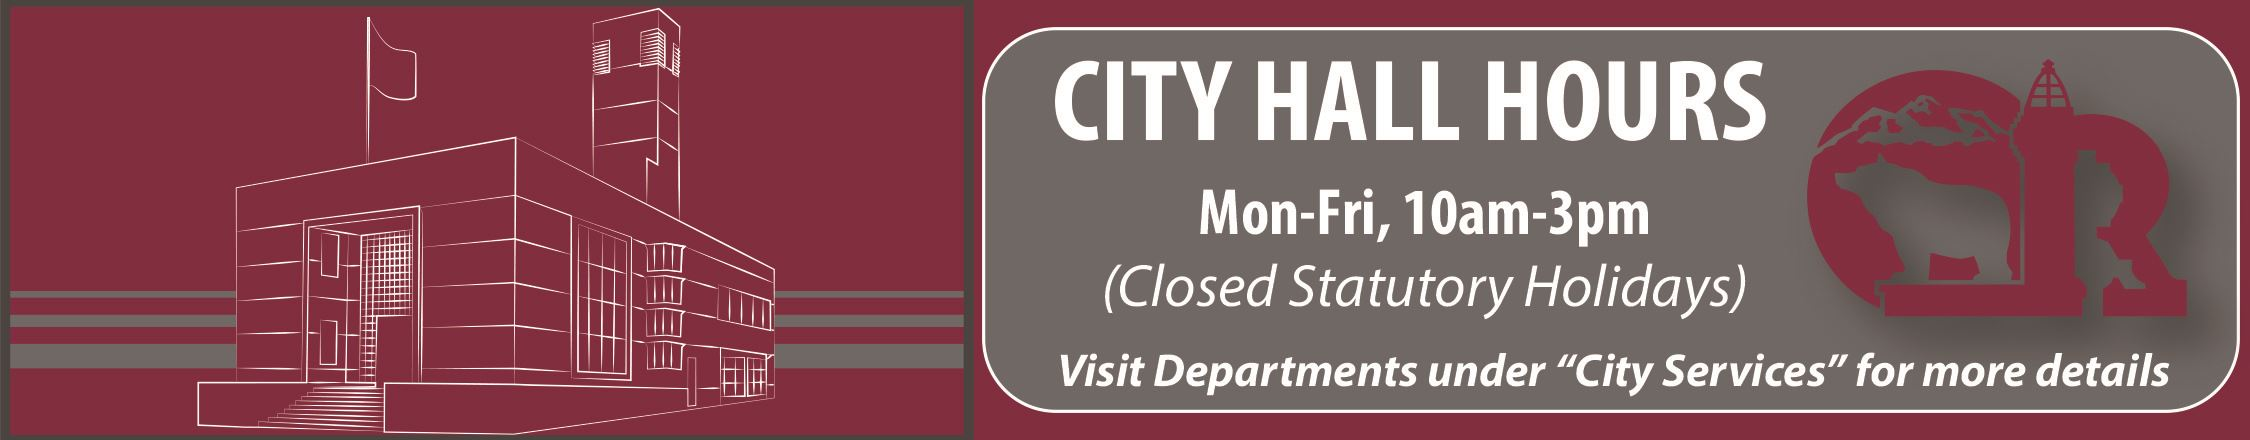 City Hall Hours-2021-03-29